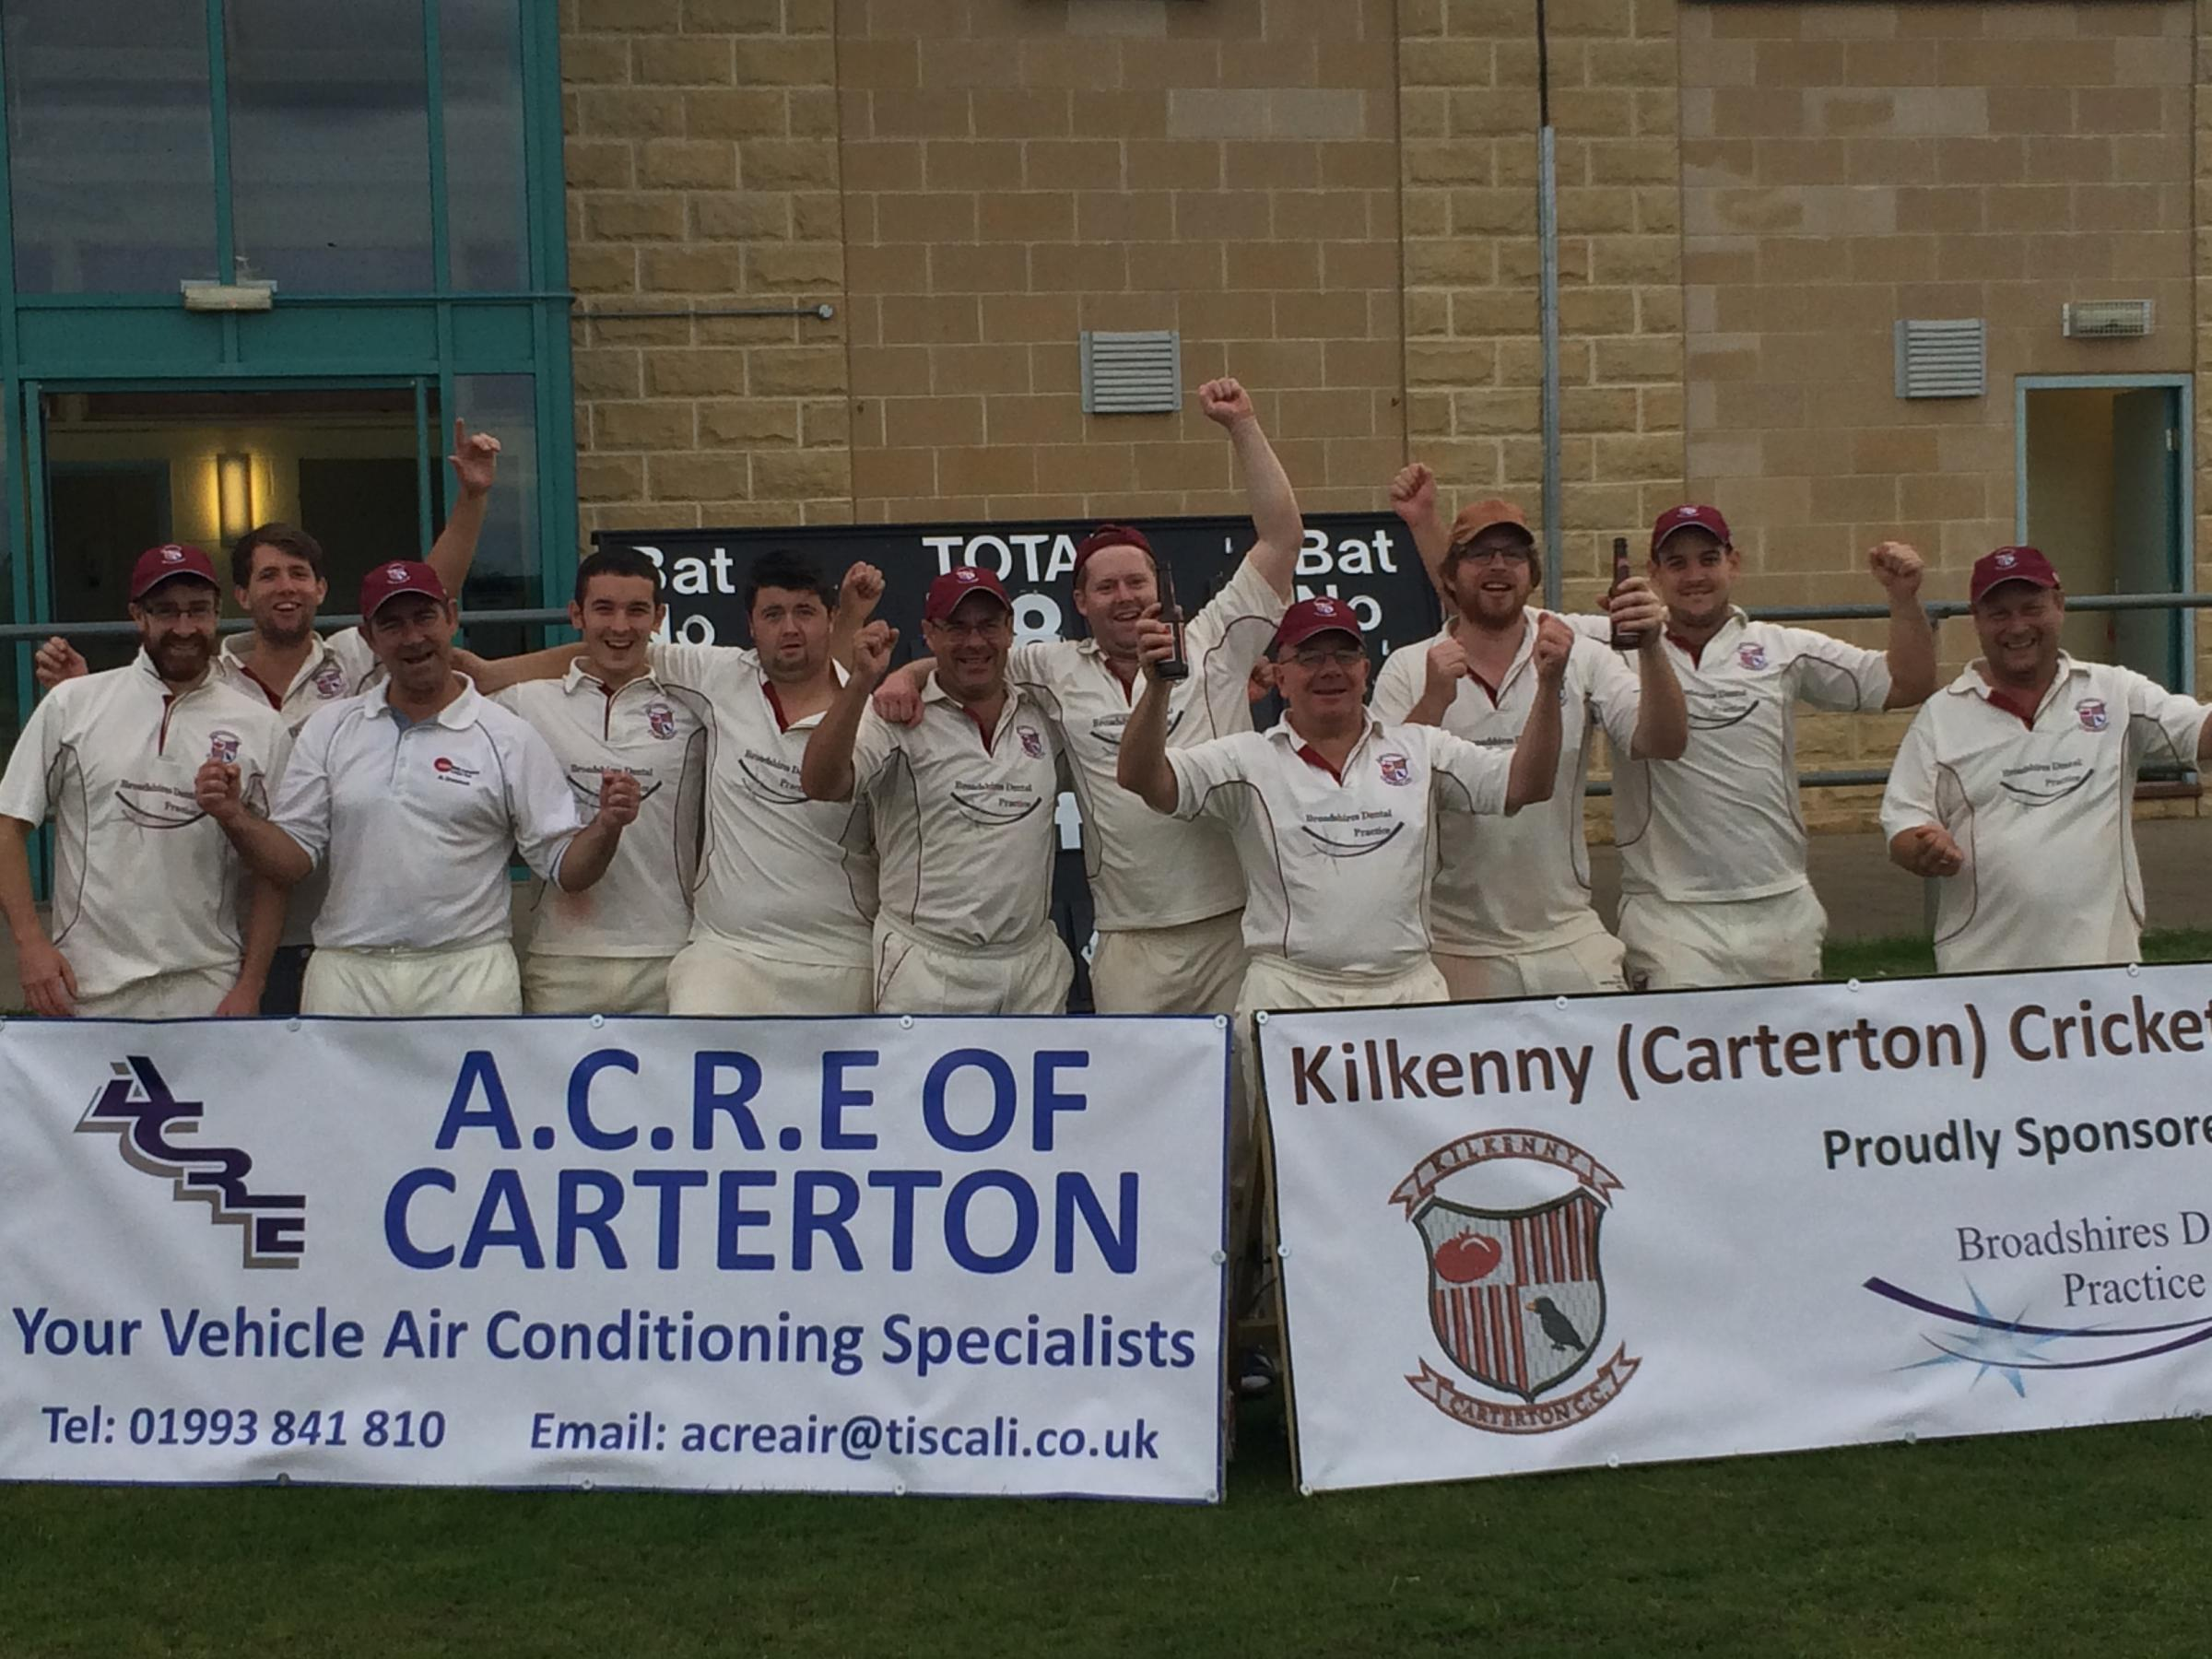 Kilkenny 2nd celebrate securing the OCA League Division 9 title with a seven-wicket victory over Marcham 2nd